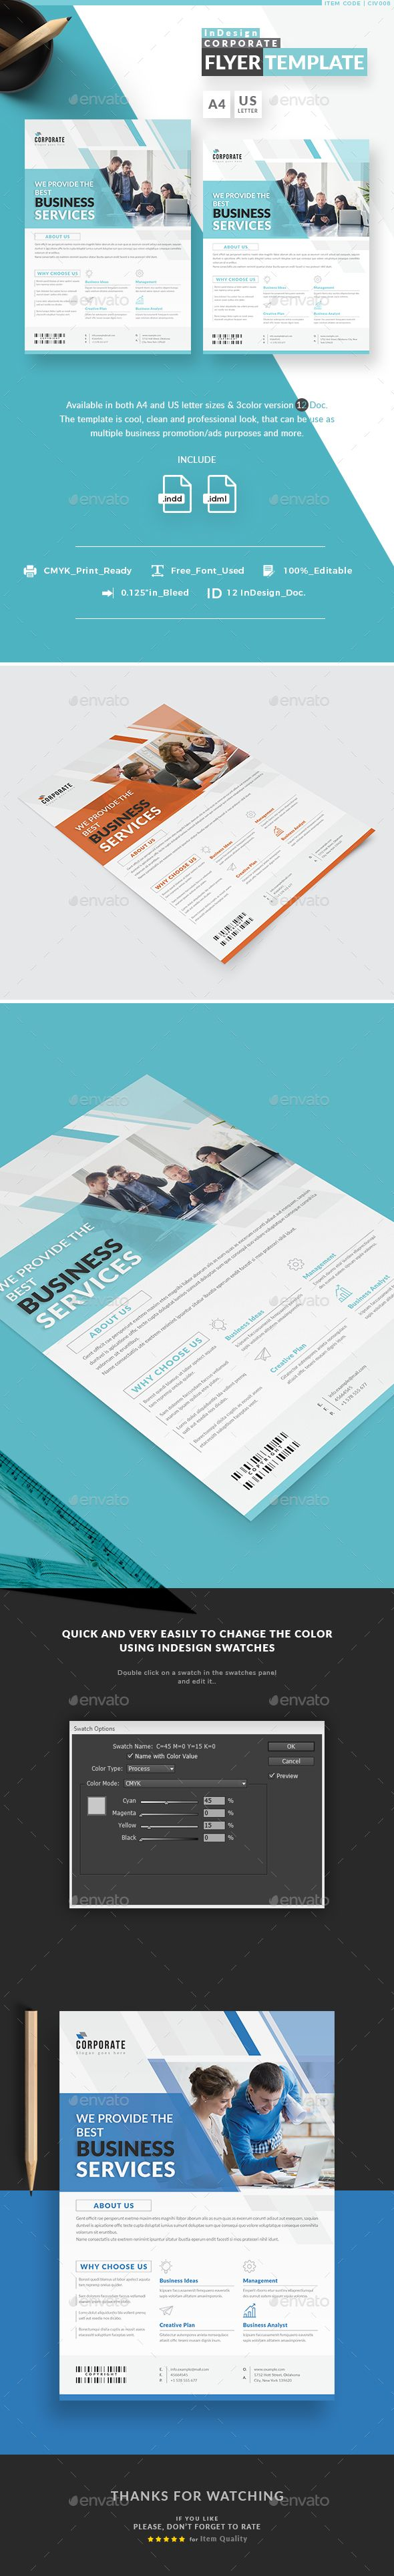 #InDesign Corporate Flyer Templates - #Corporate #Flyers